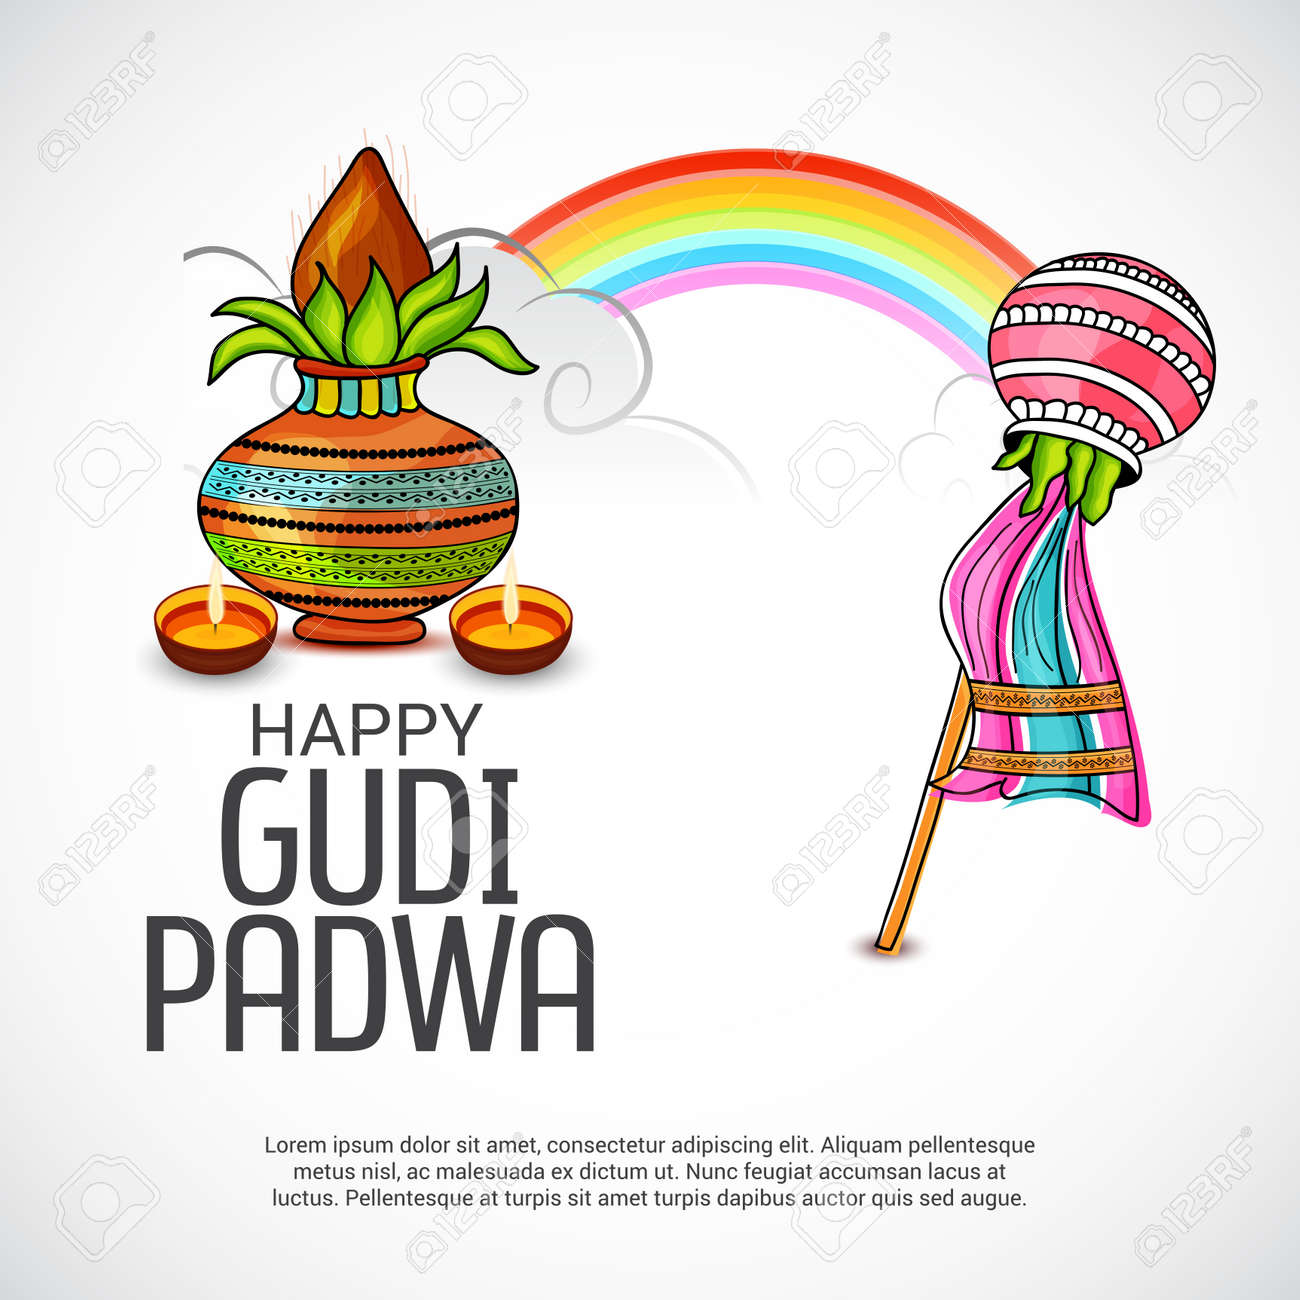 Happy gudi padwa greetings with colorful festive elements and happy gudi padwa greetings with colorful festive elements and rainbow illustration stock vector 95990226 m4hsunfo